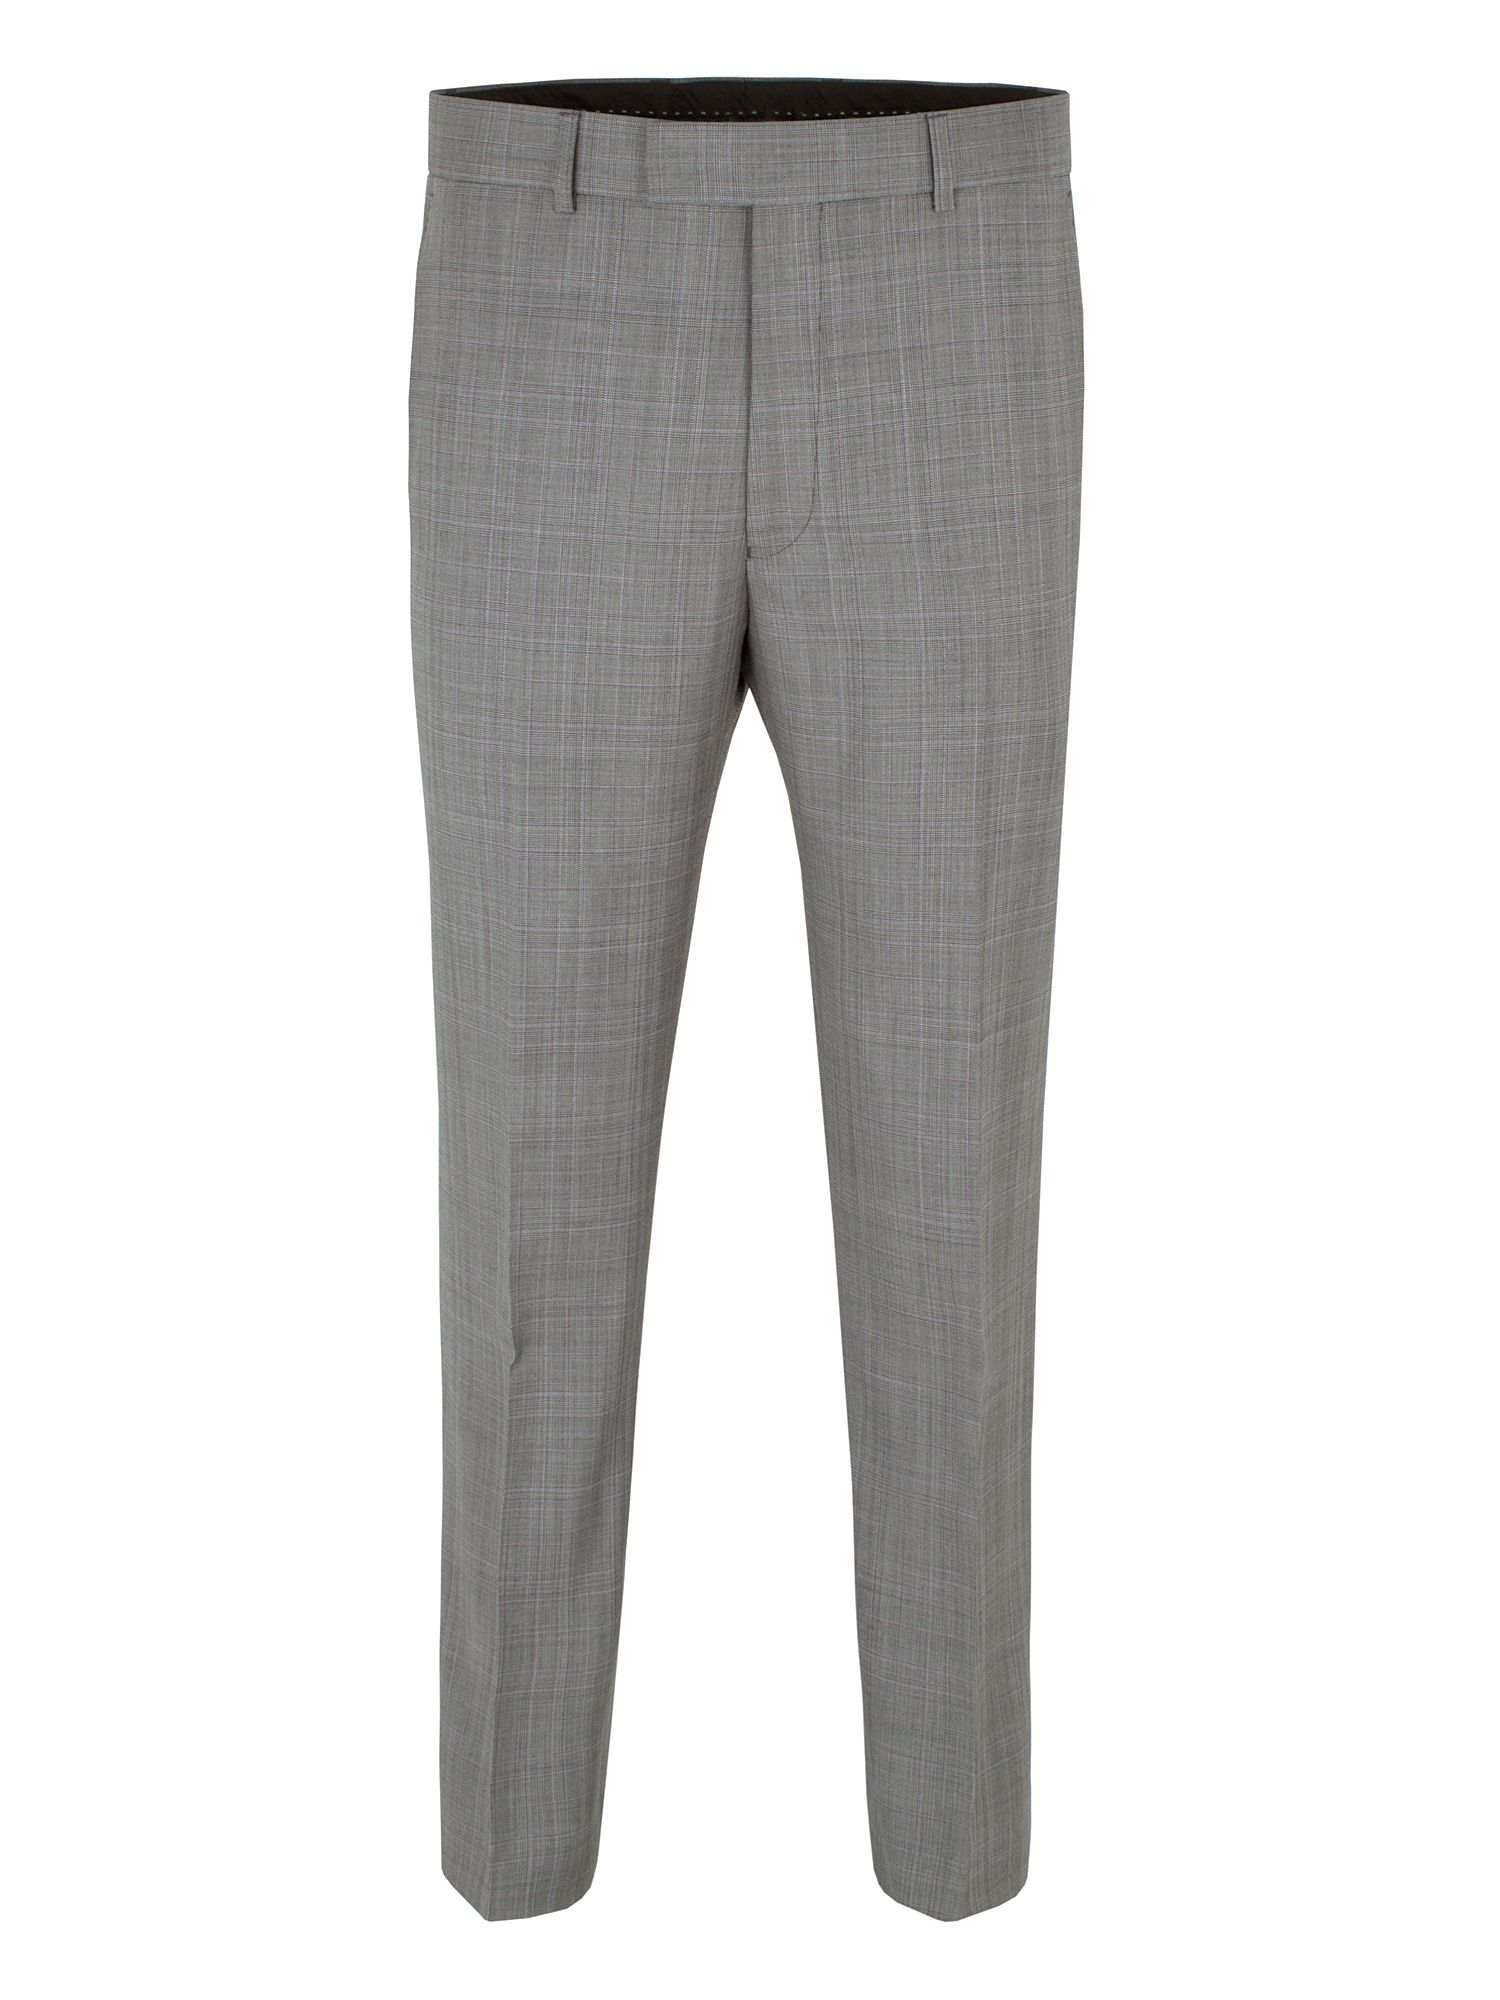 Grey/lilac check trouser